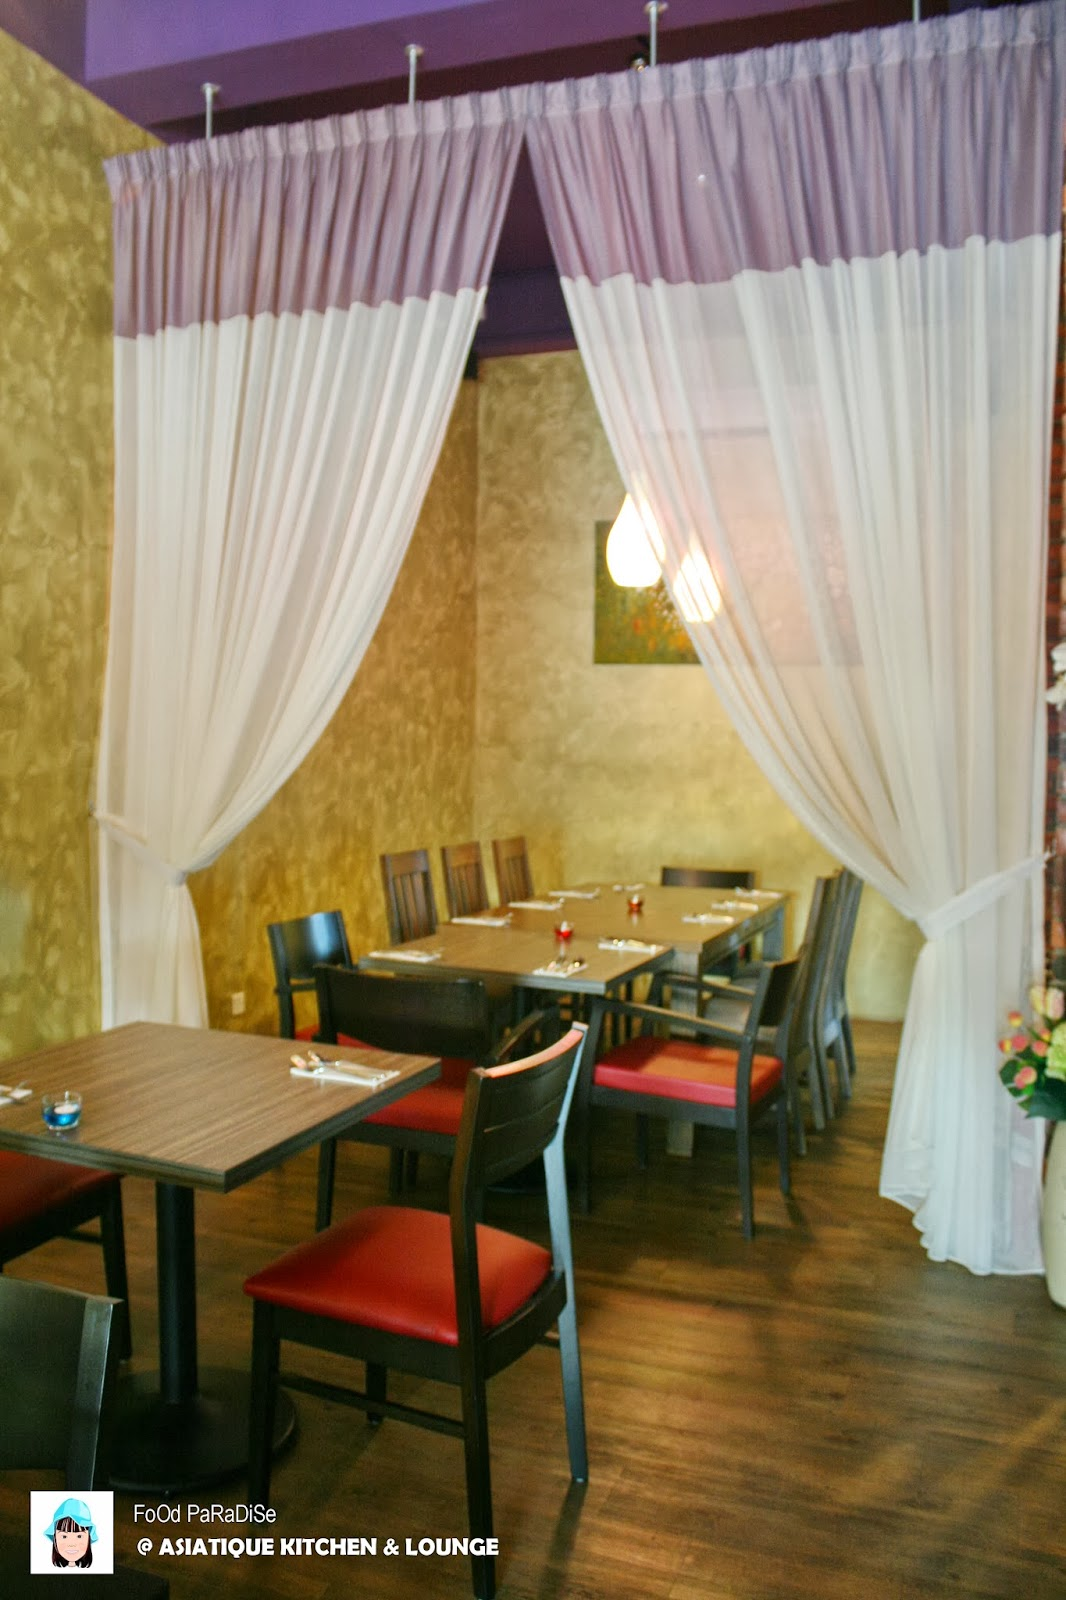 ASIATIQUE Kitchen & LOUNGE